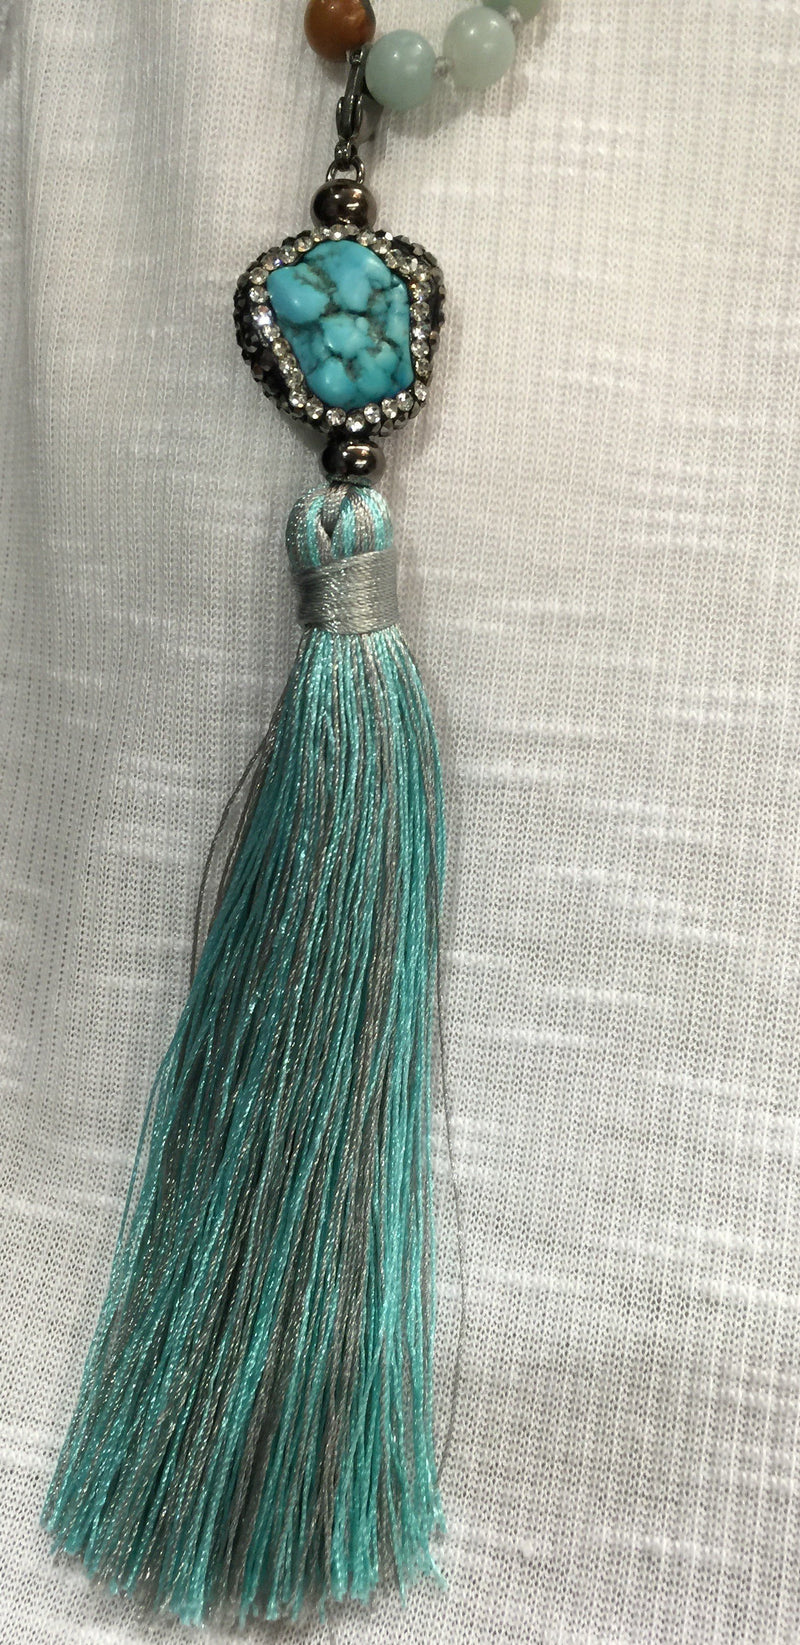 Blue Agate and Turquoise Long Tassel Necklace